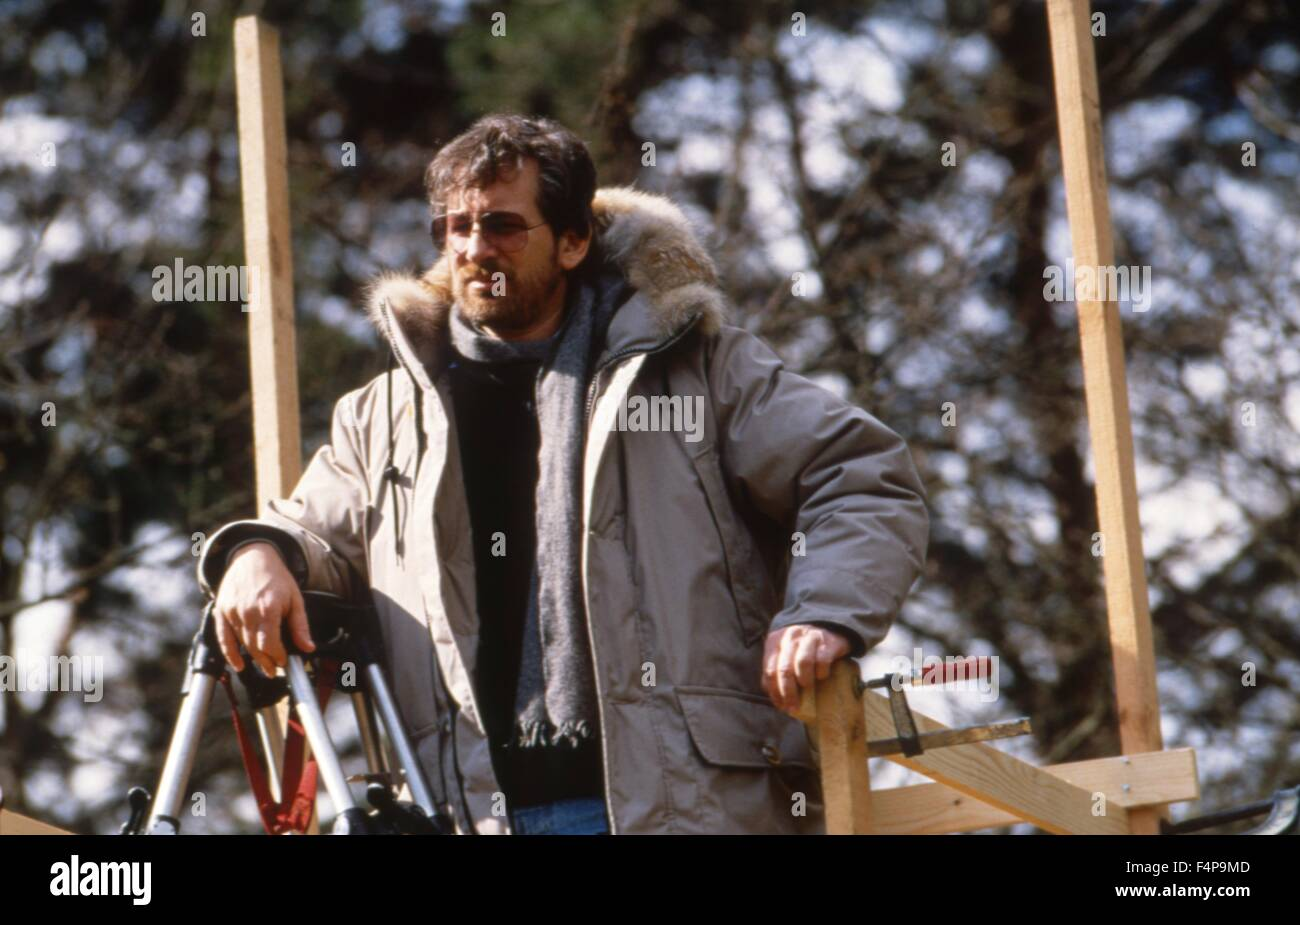 Steven Spielberg / Empire of the Sun 1987 directed by Steven Spielberg - Stock Image